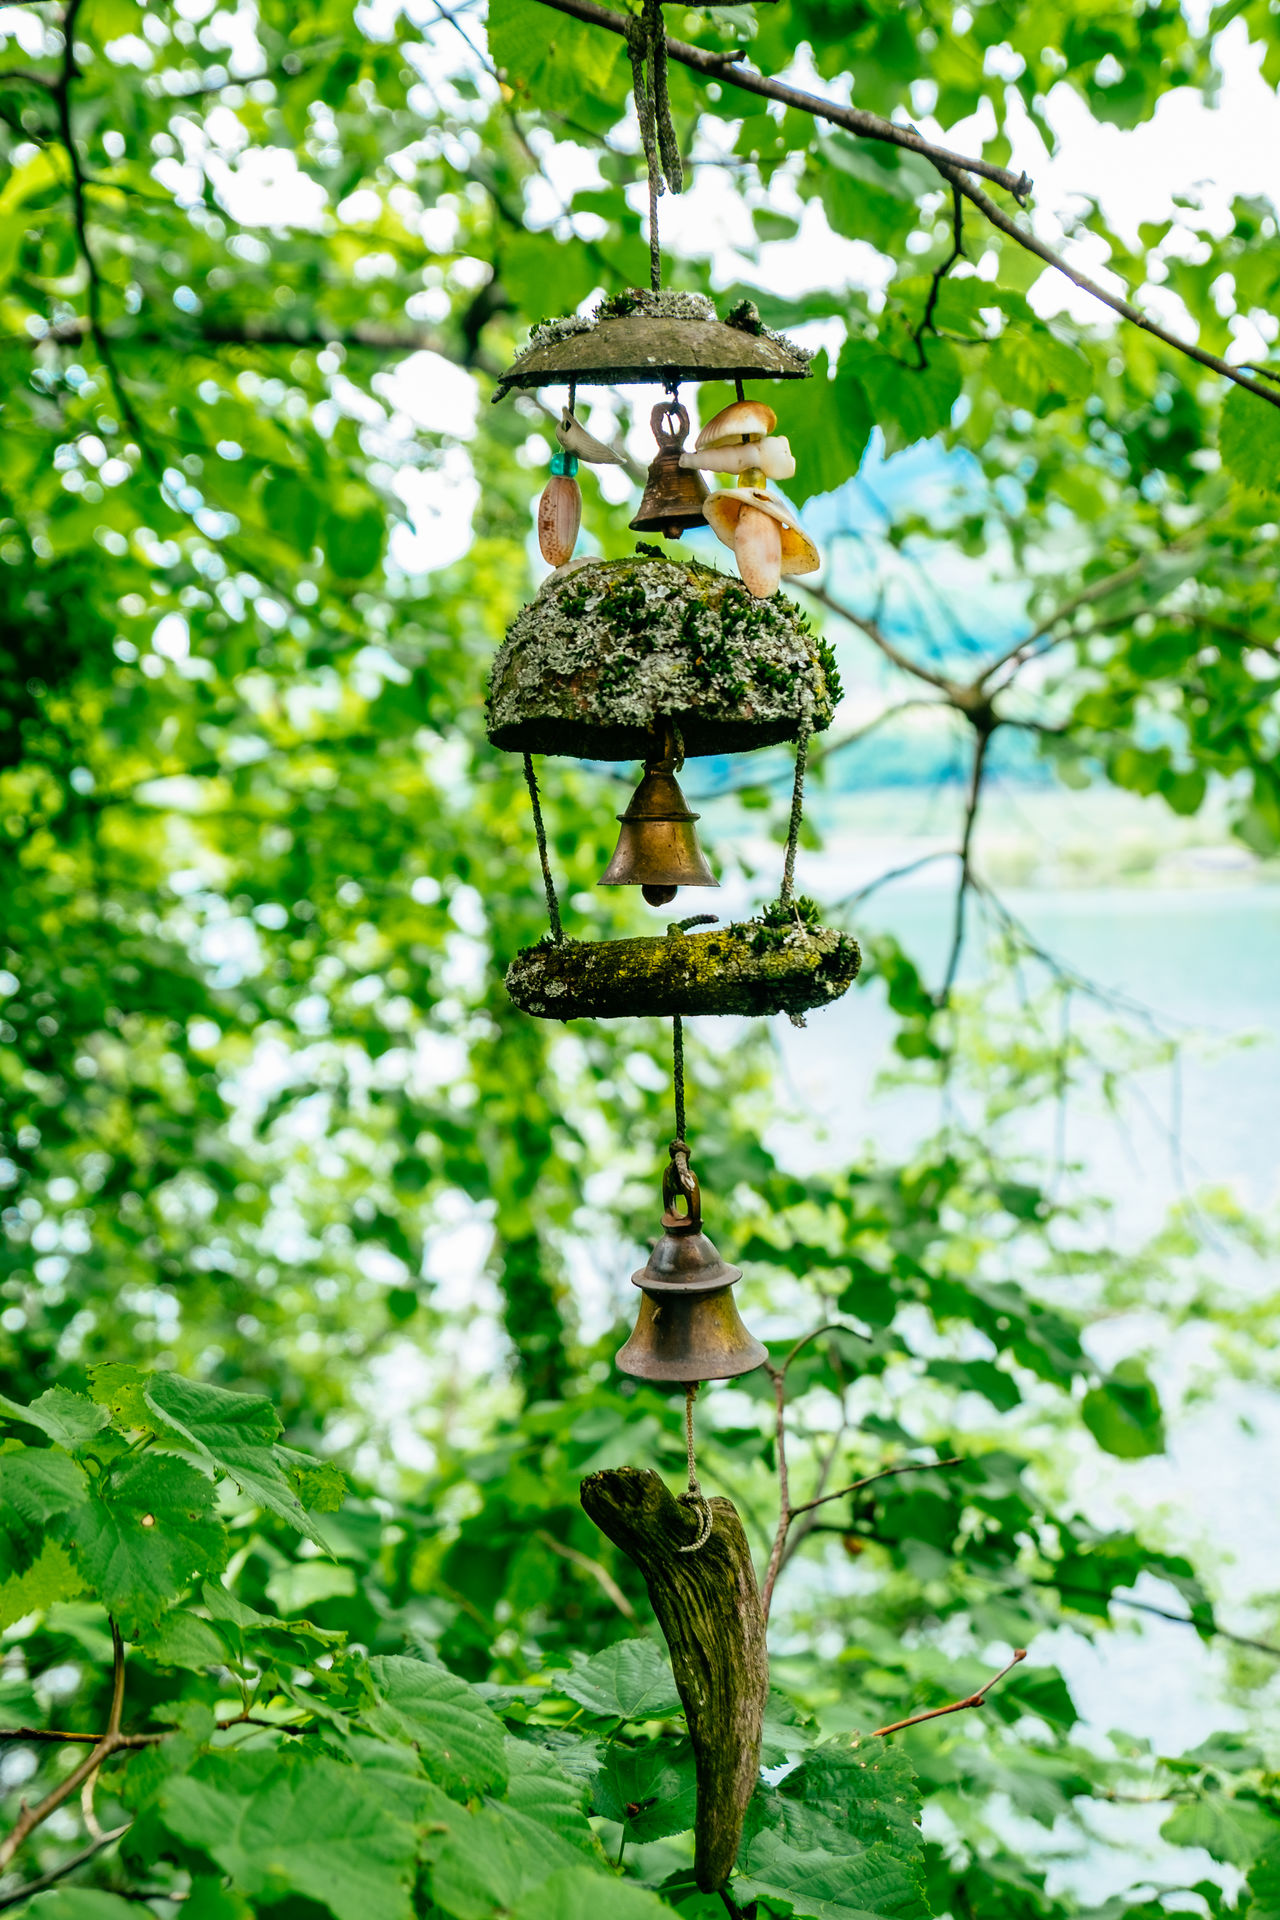 Animal Themes Animal Wildlife Animals In The Wild Bird Branch Close-up Day Focus On Foreground Green Color Growth Leaf Low Angle View Nature No People Outdoors Plant Tree